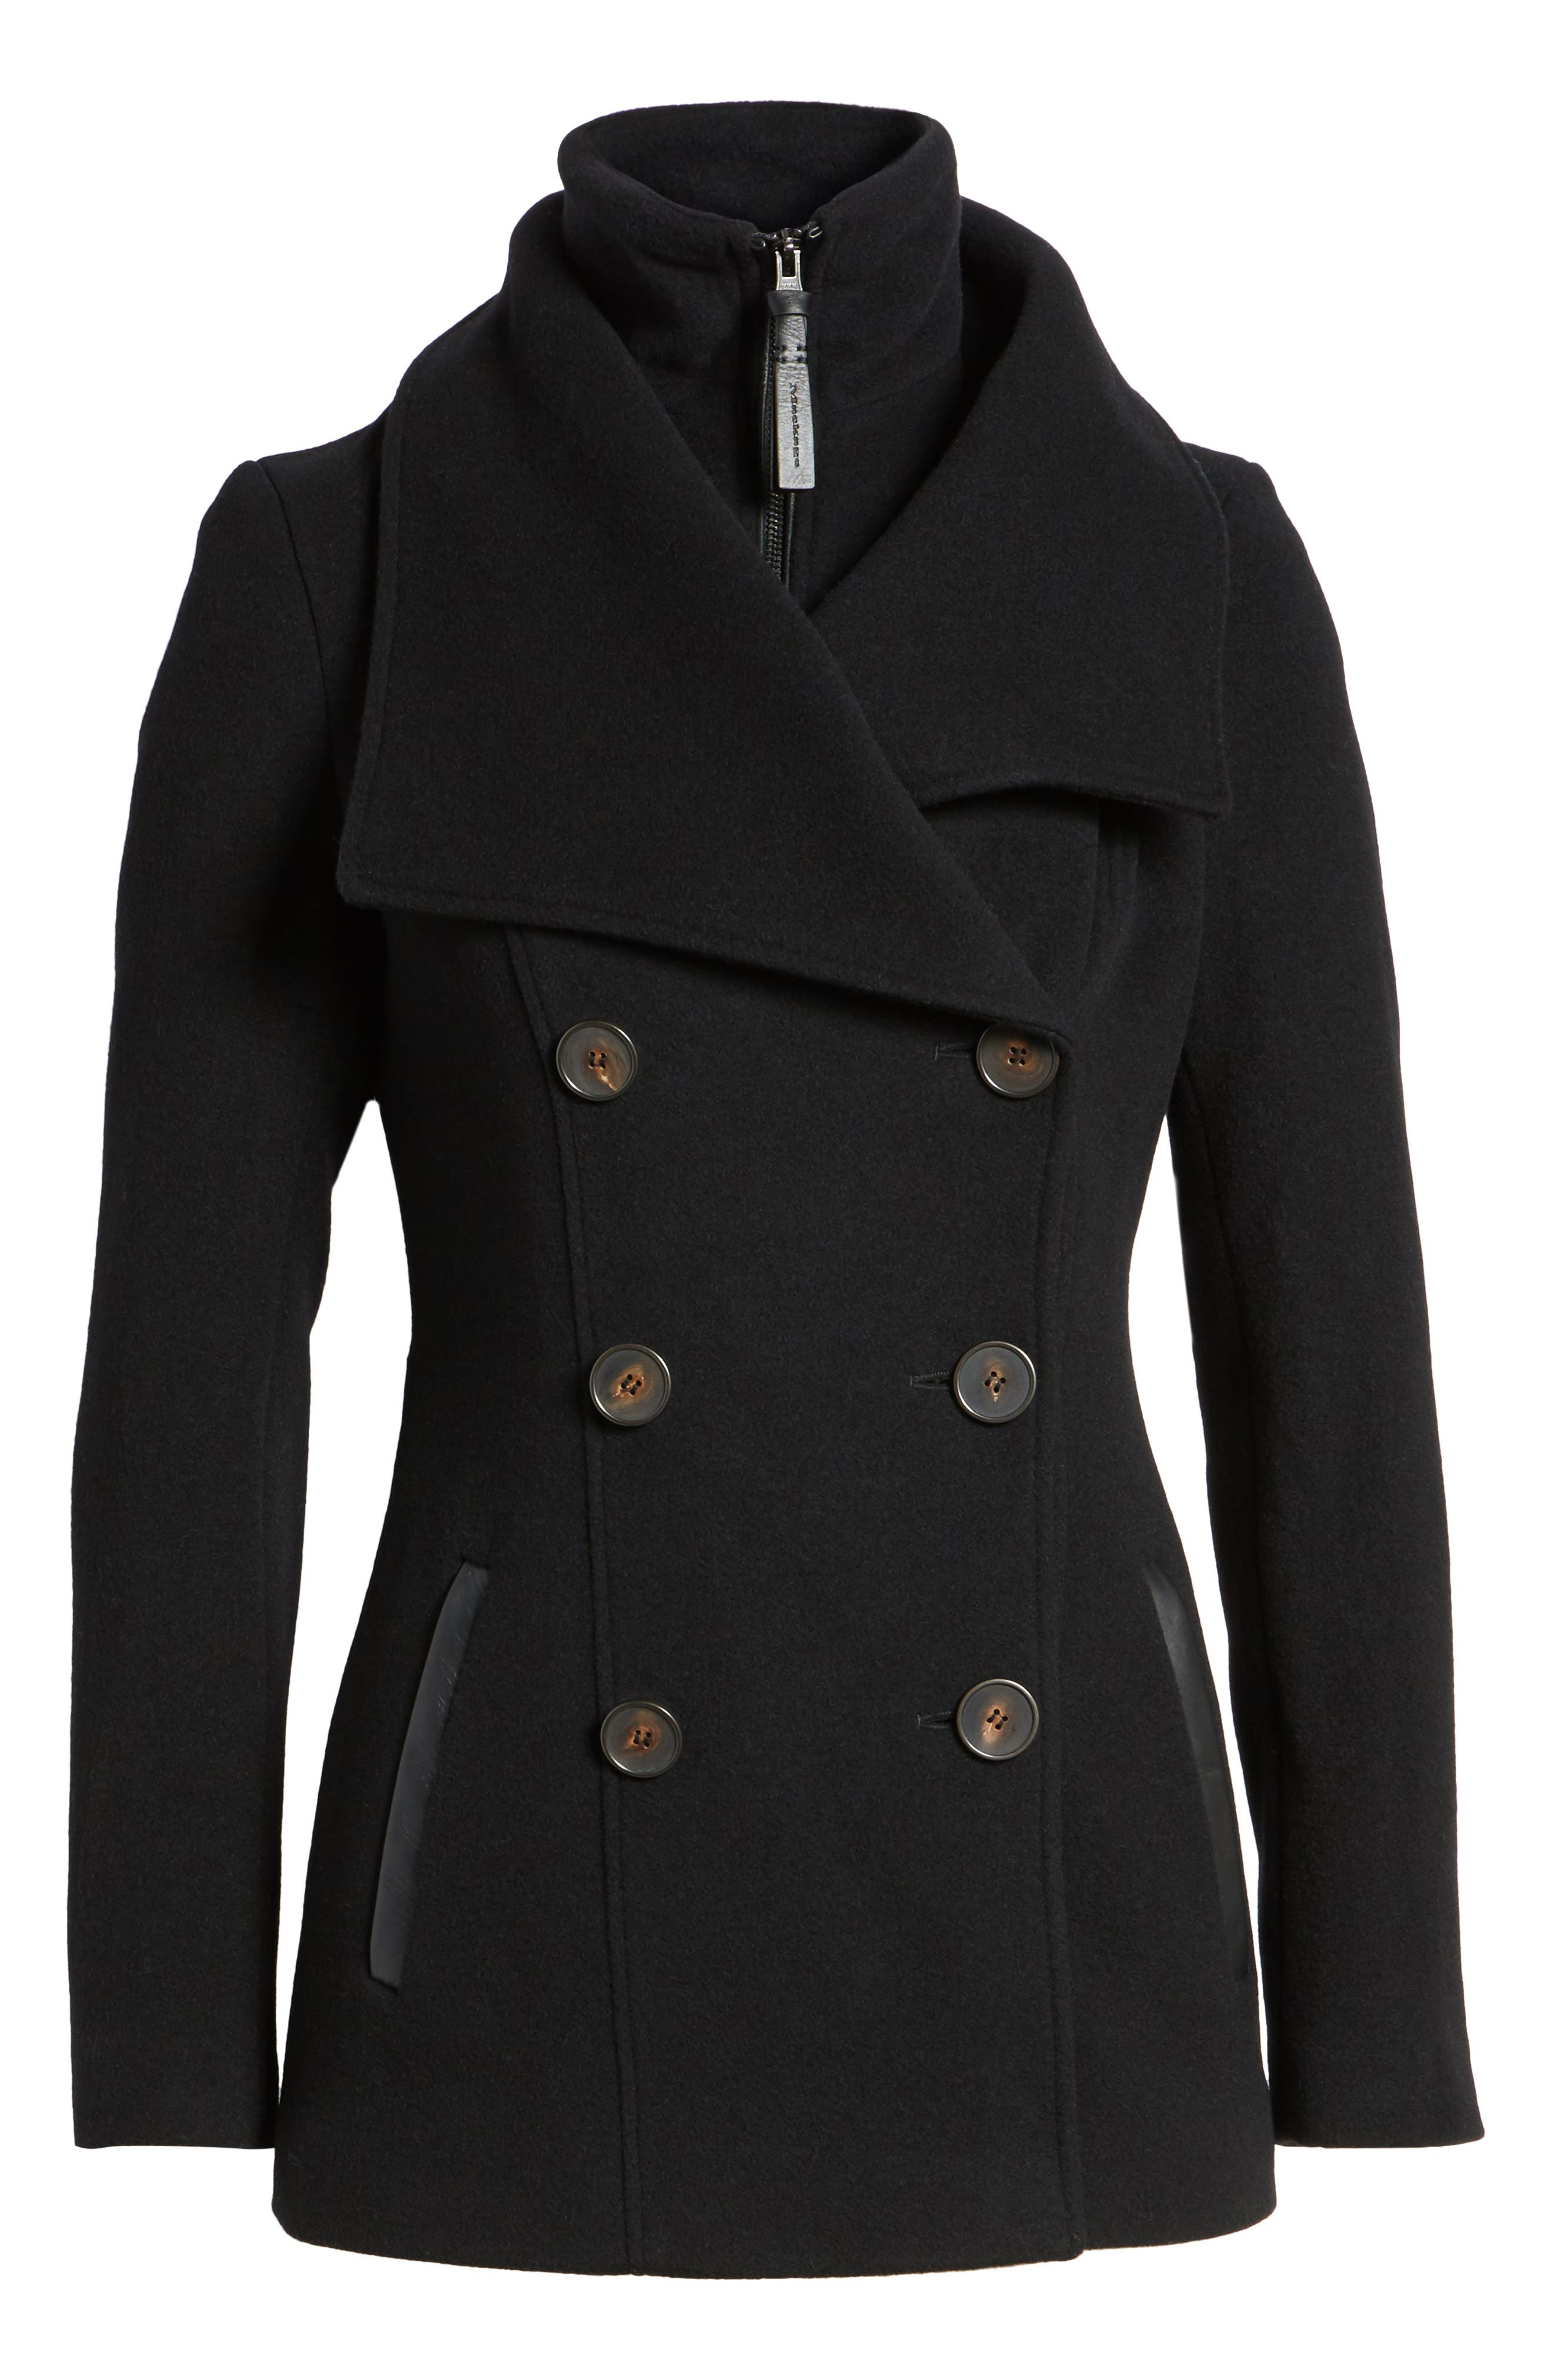 Norissa Double-Breasted Wool Blend Peacoat,                             Alternate thumbnail 5, color,                             001